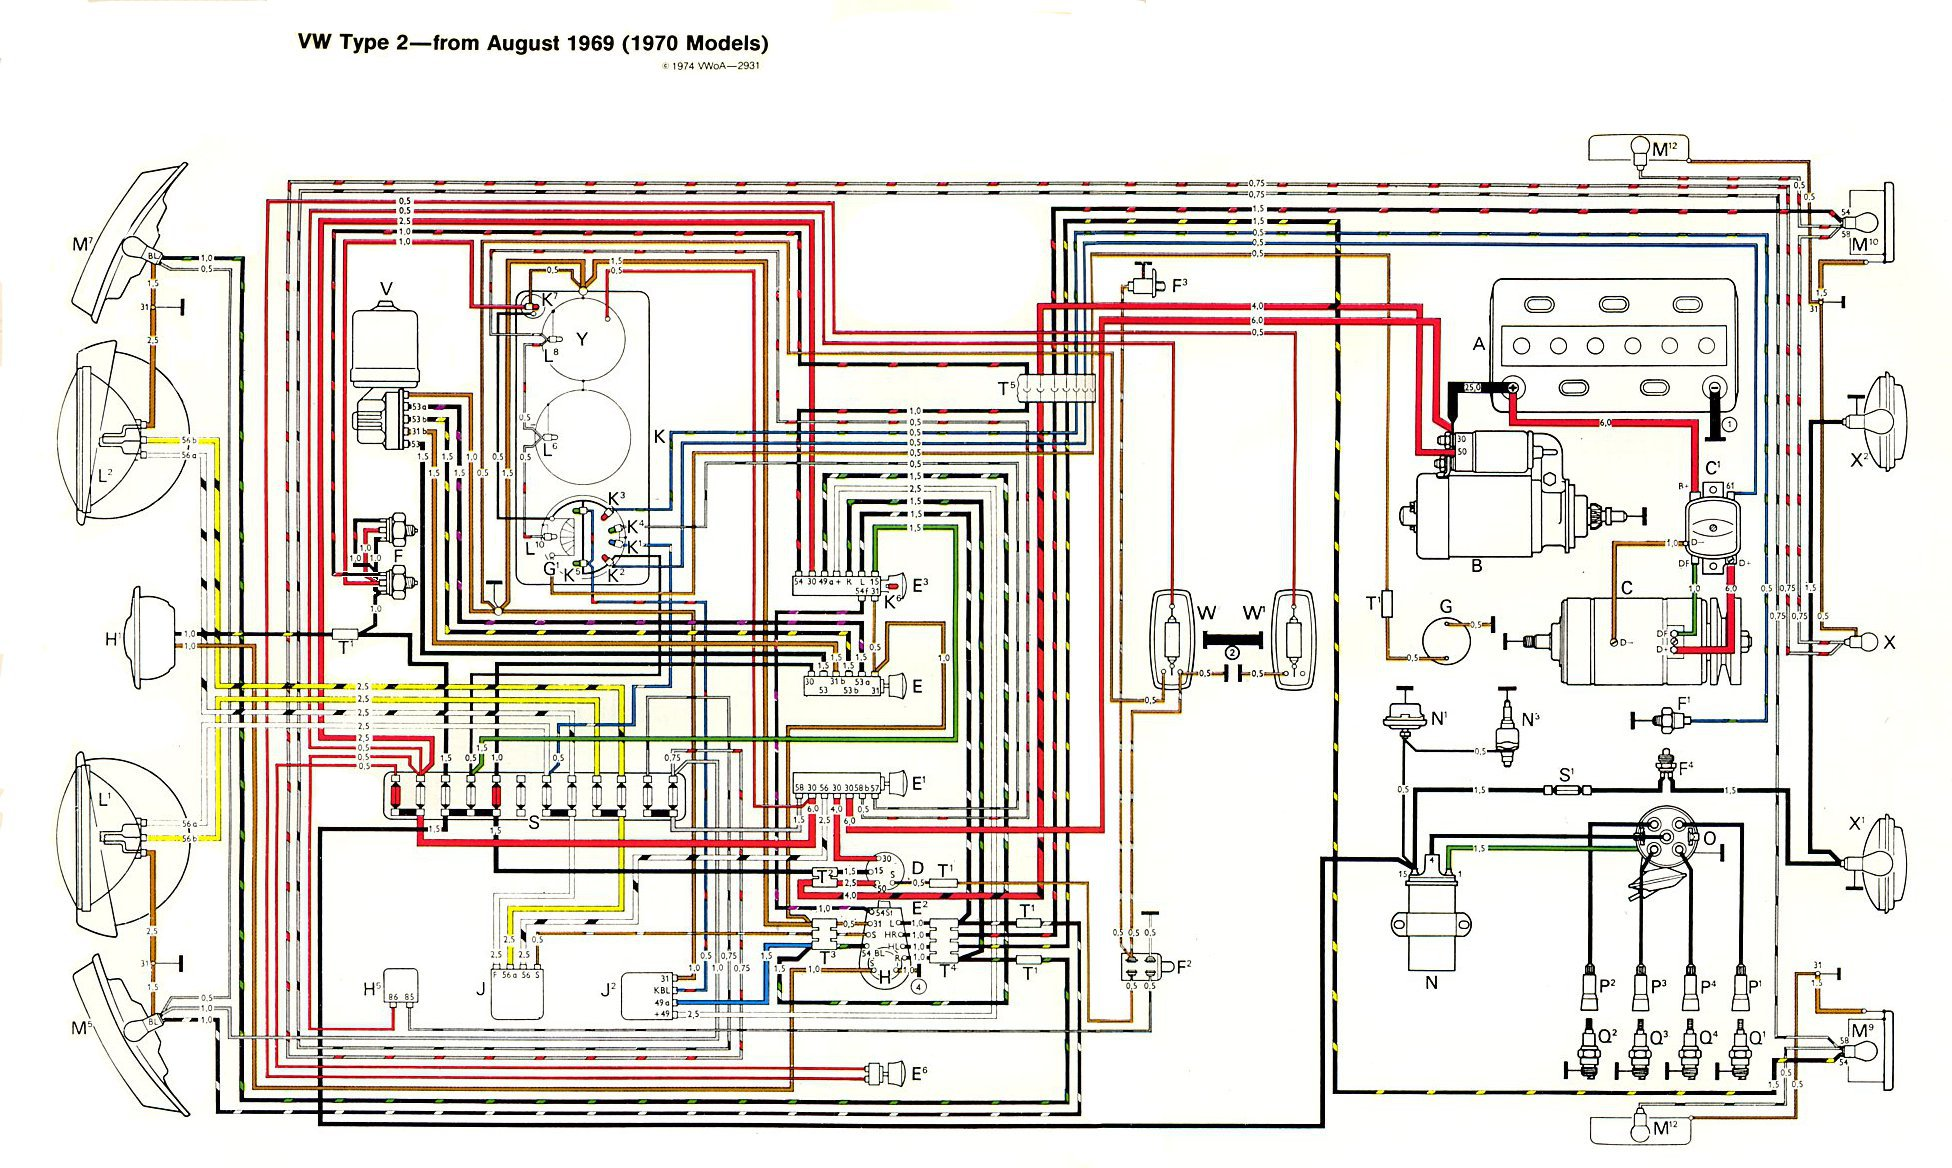 Type 2 Wiring Diagrams 69 Vw Generator Diagram